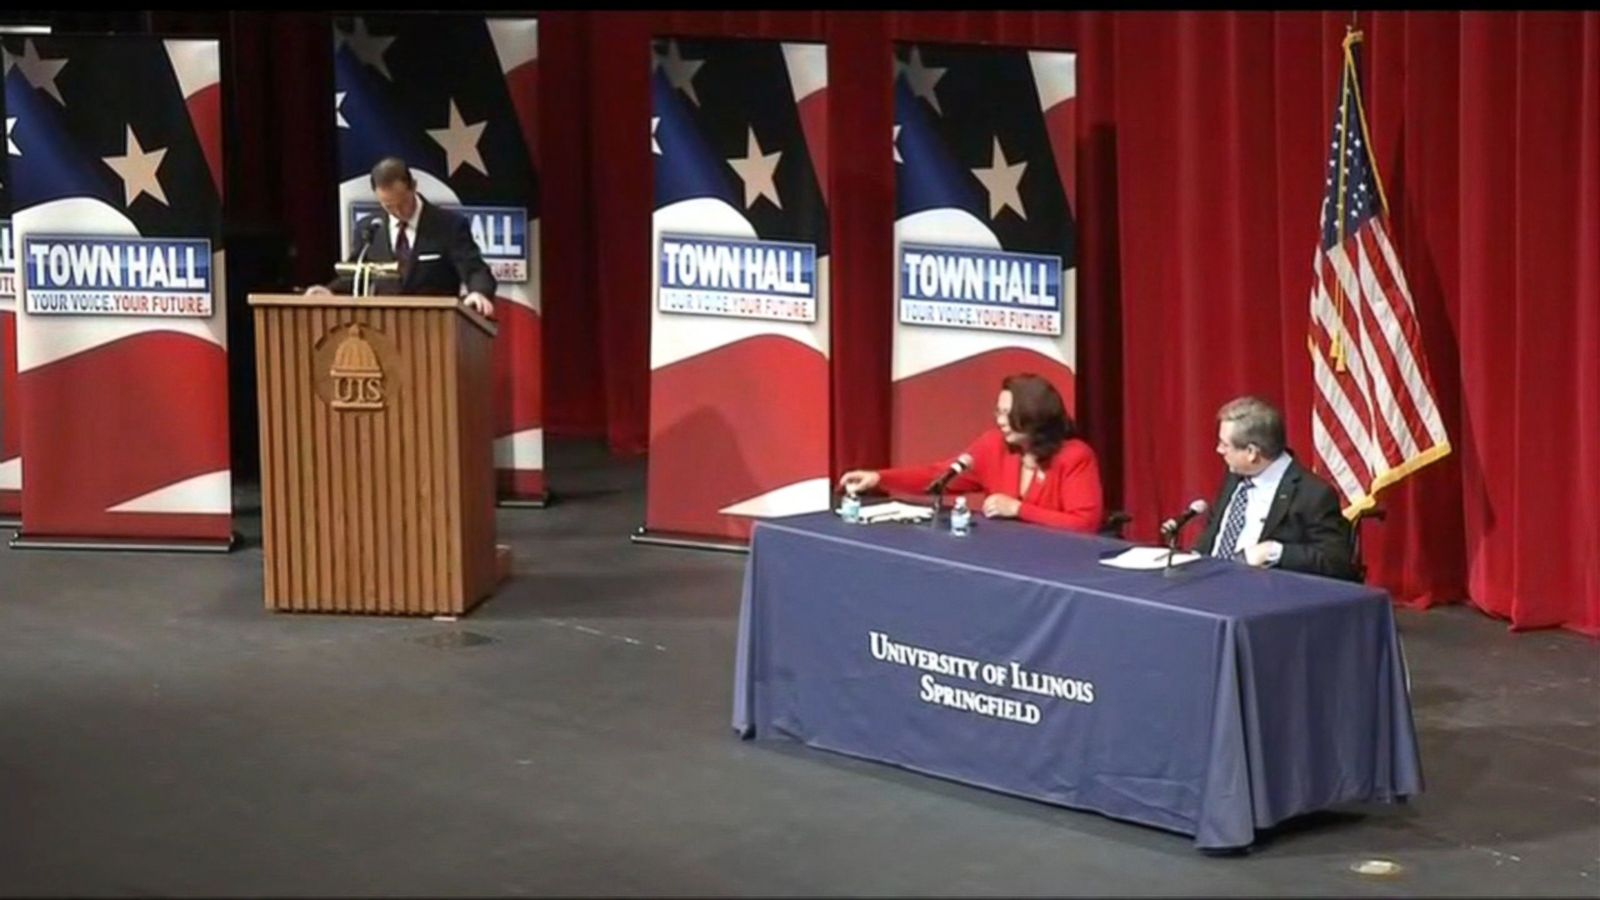 Republican Sen. Mark Kirk appeared to question his Democratic opponent's ties to the United States based on her bi-racial heritage at a debate on Thursday night in Springfield, Illinois.